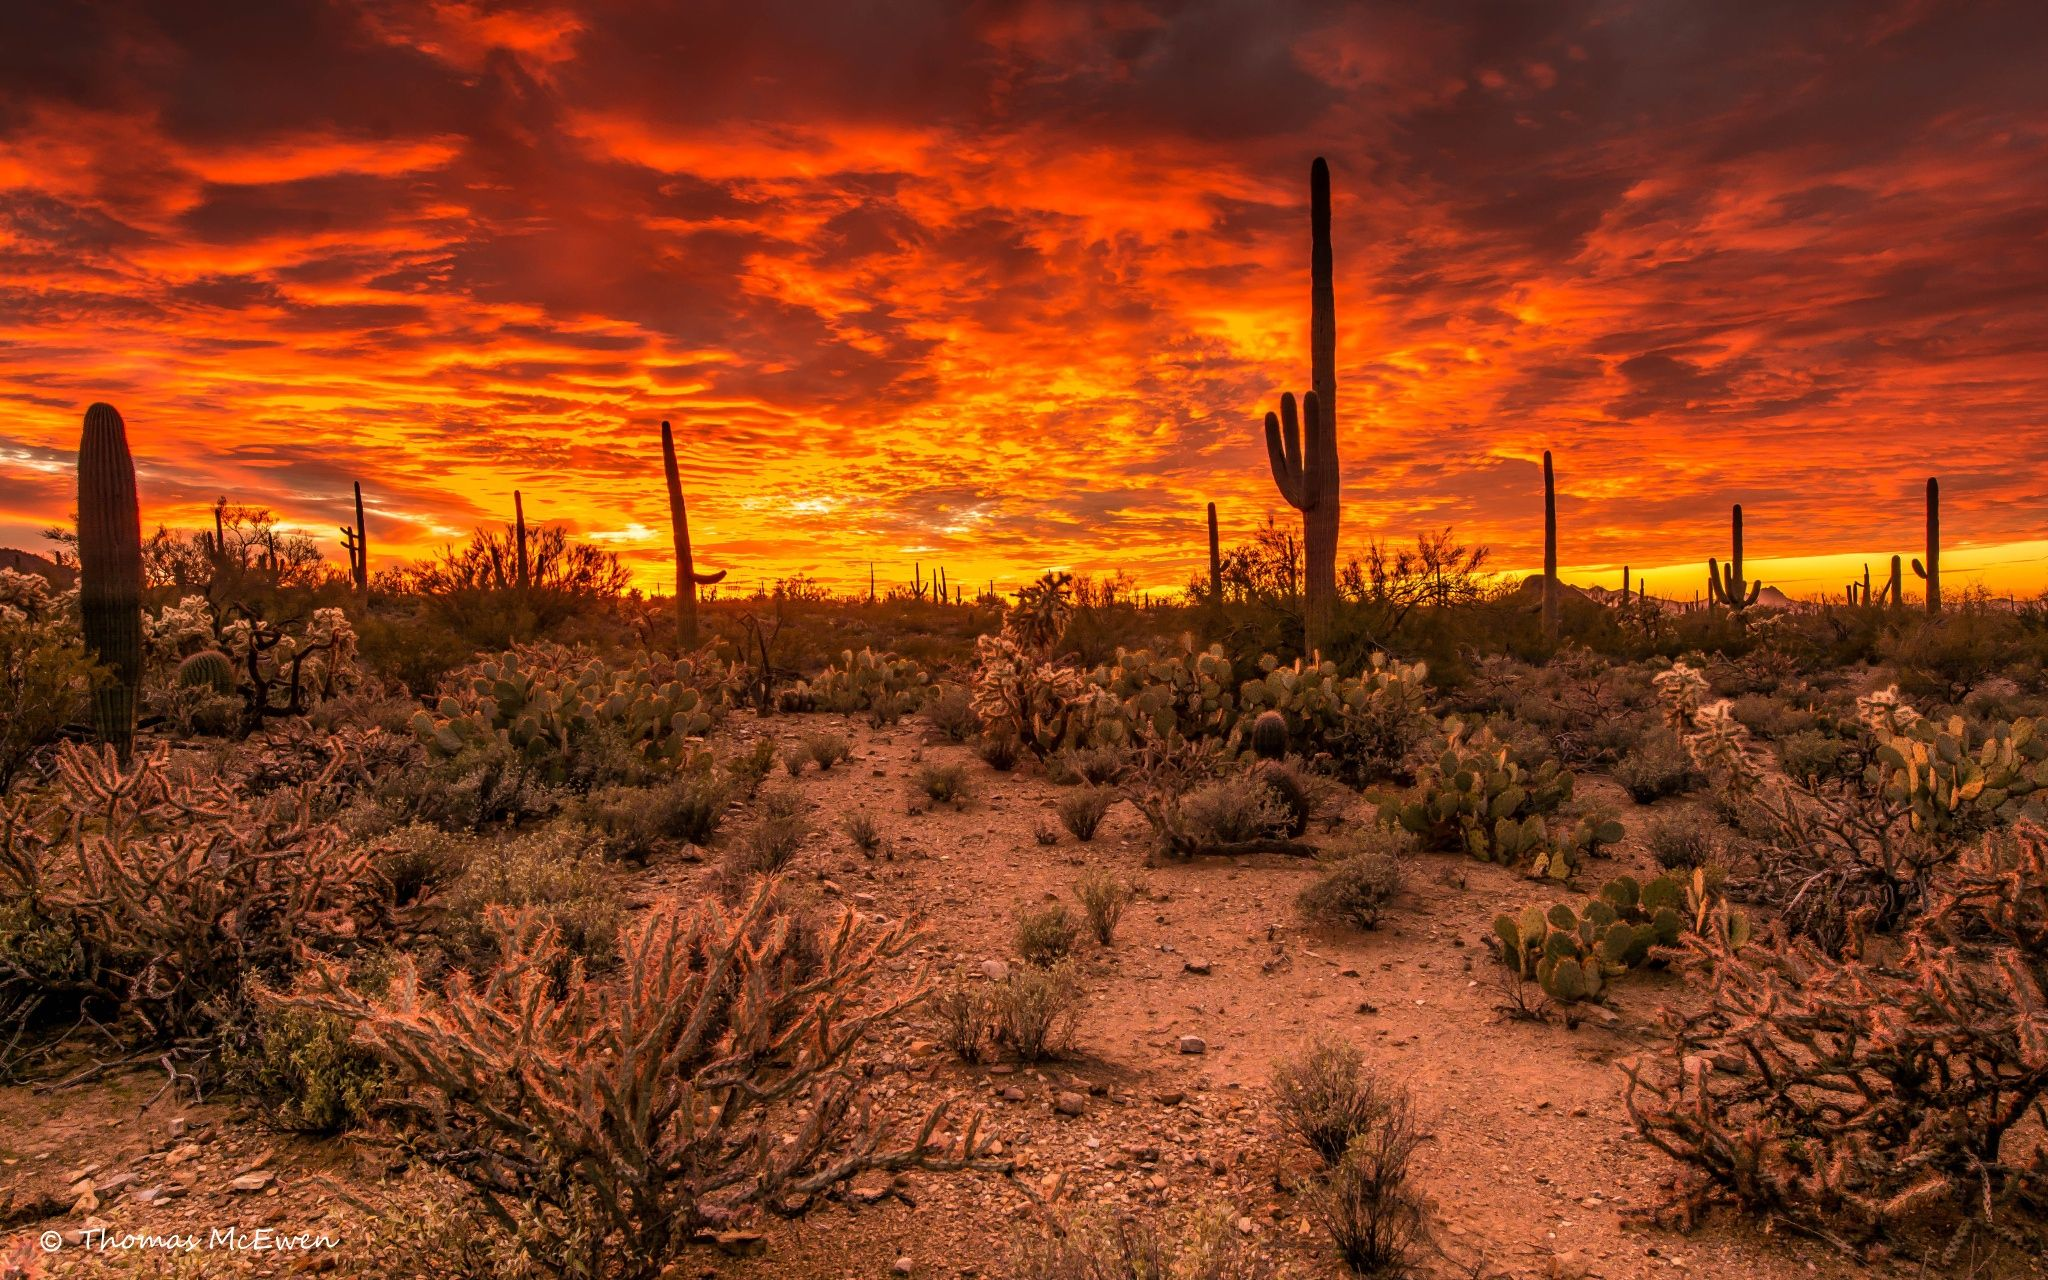 Fall Live Wallpapers For Windows 7 Western Sunset Tucson Arizona By Thomas Mcewen On 500px